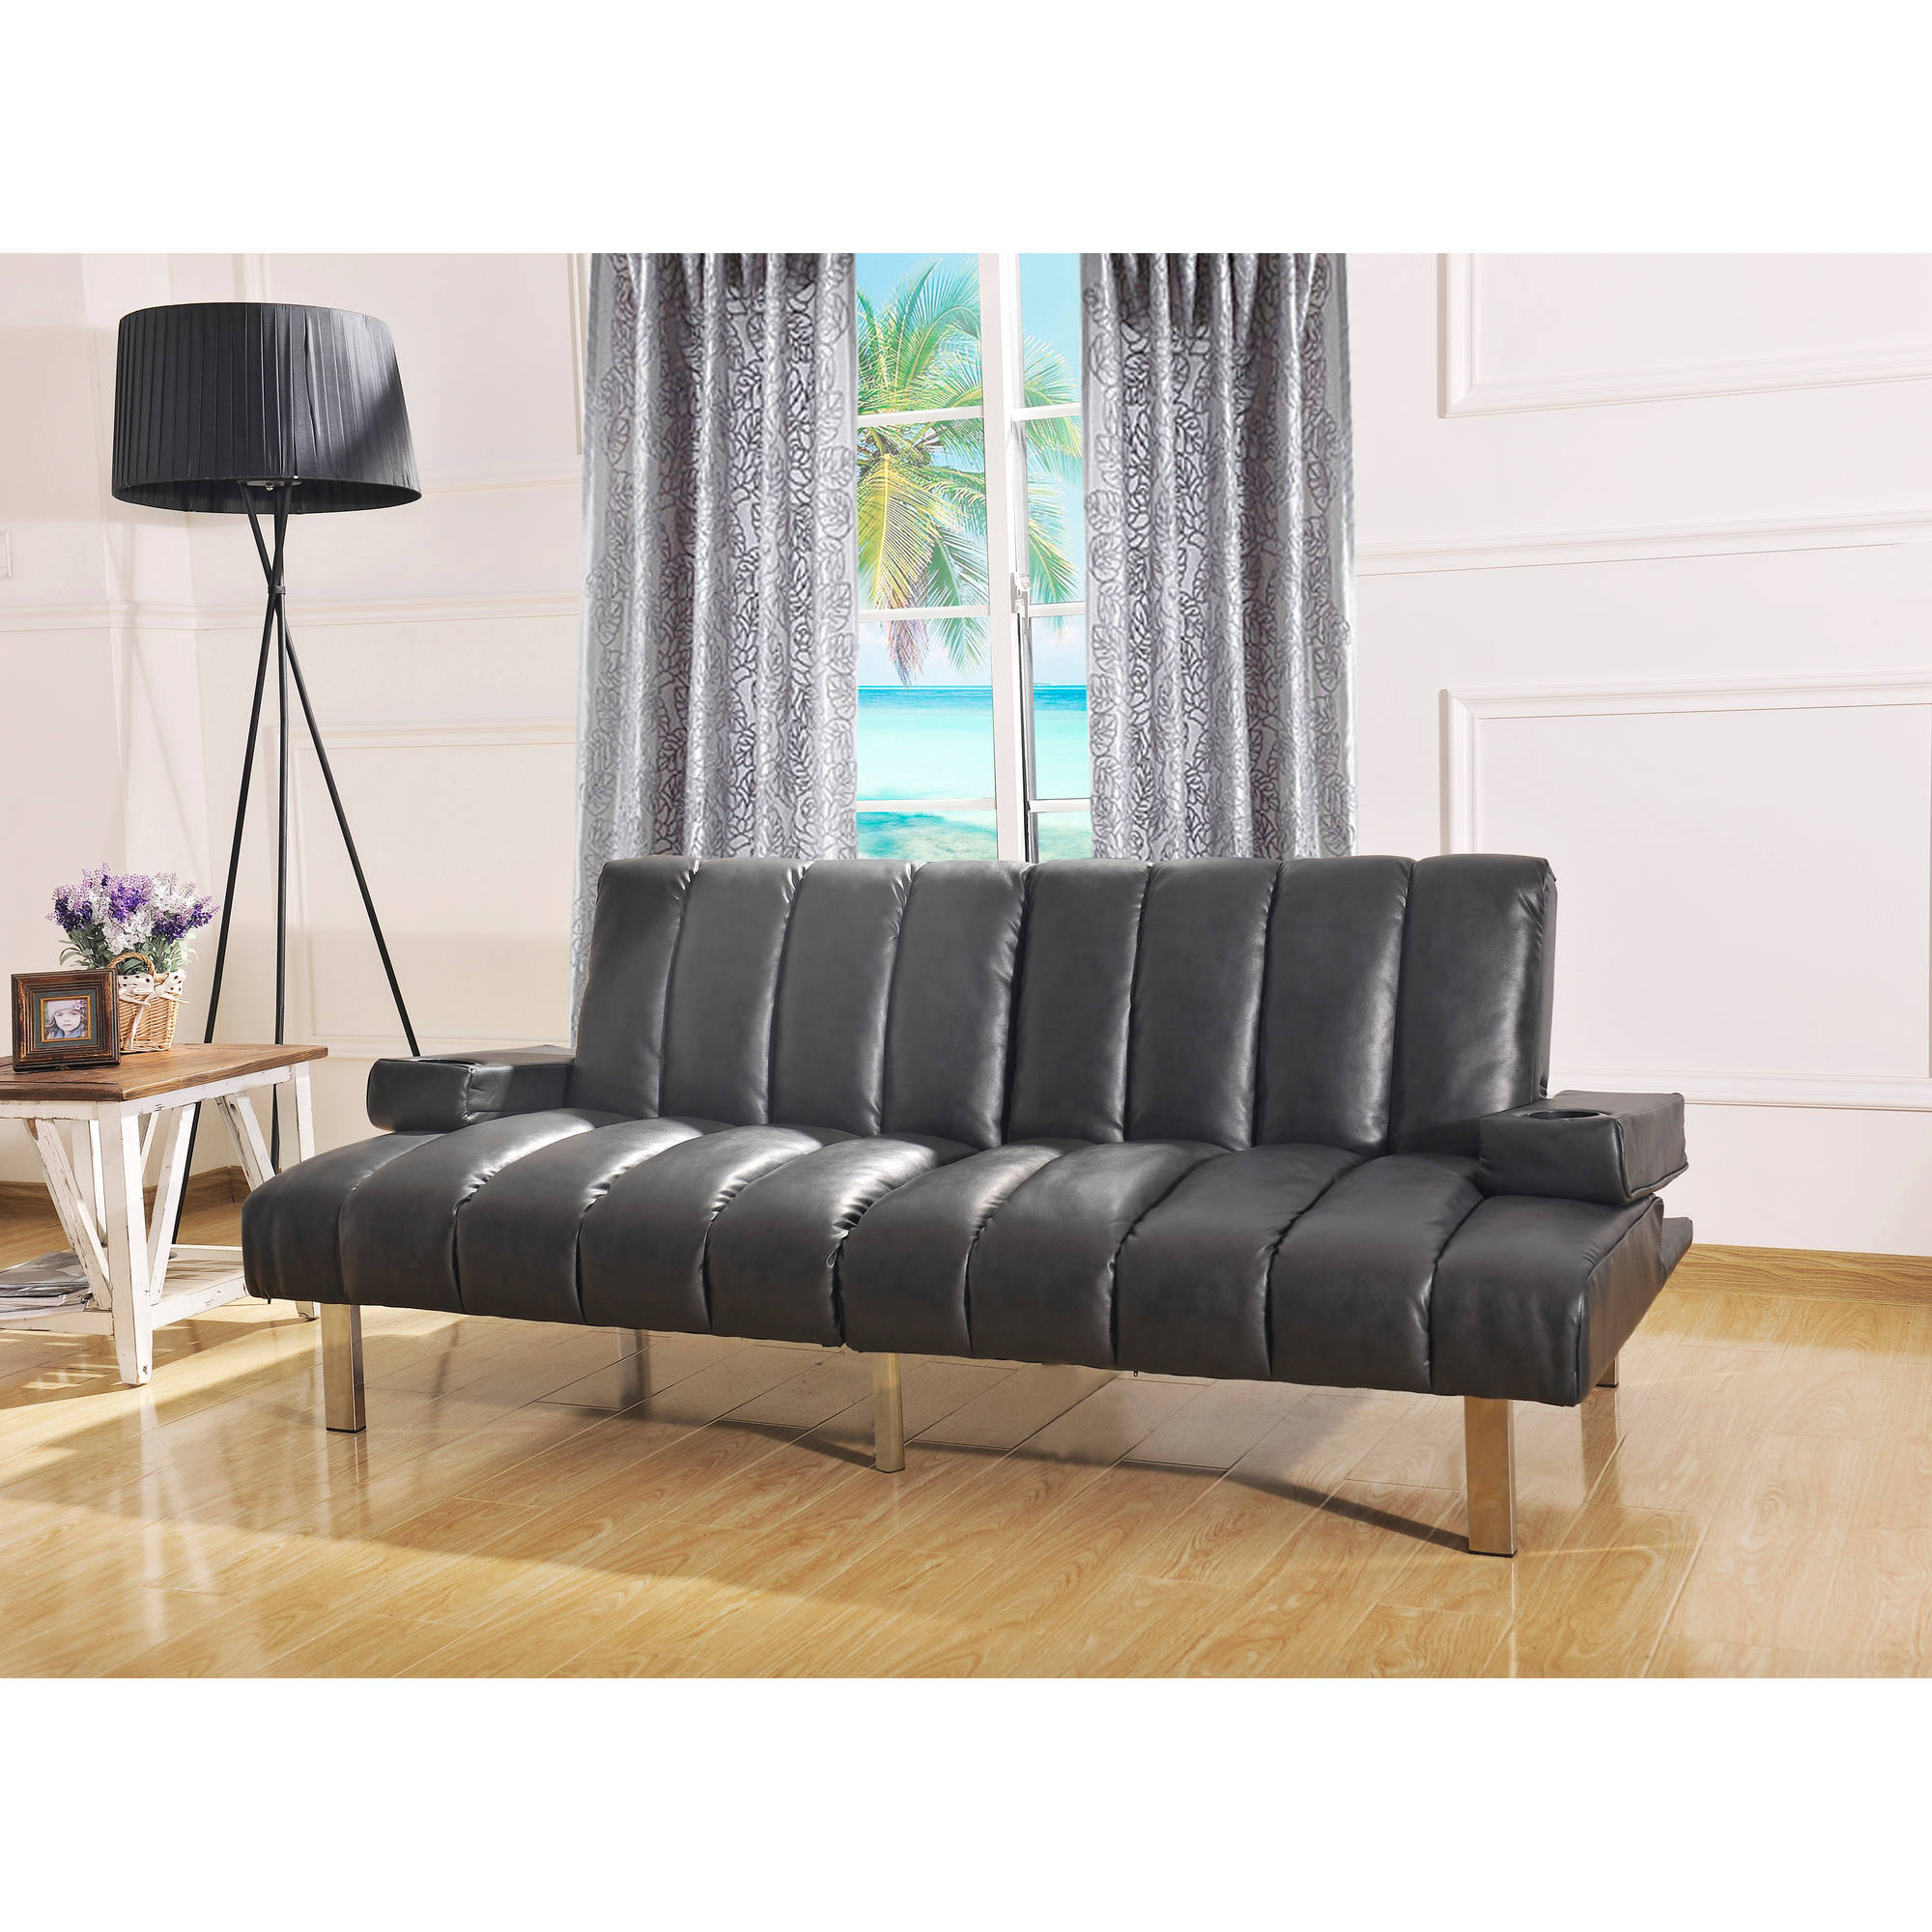 Mainstays Theater Futon, Black by